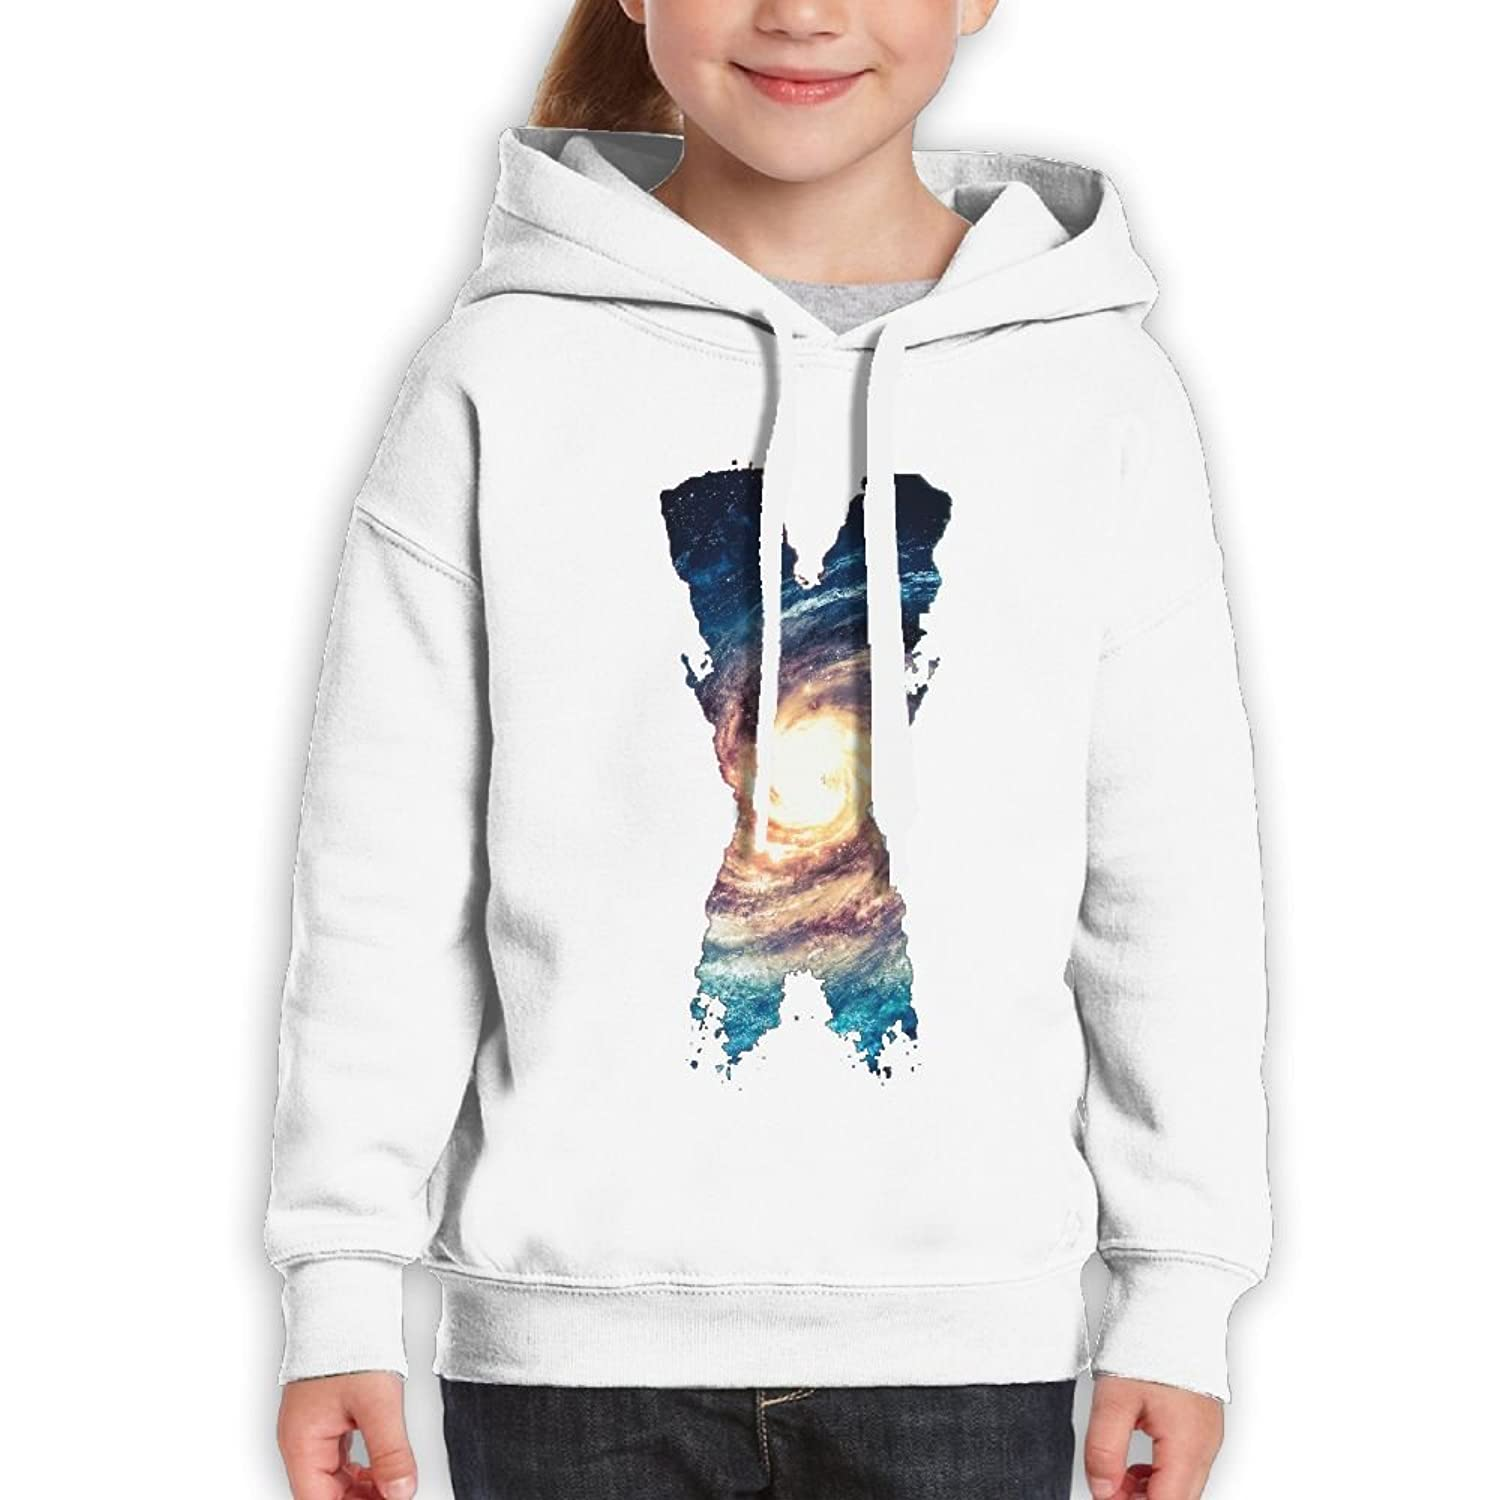 54aed3aafcd4 Humanize Jake Paul Fashion Trend Dream Spring Youth Hooded Sweater Dynamic  Sweater White